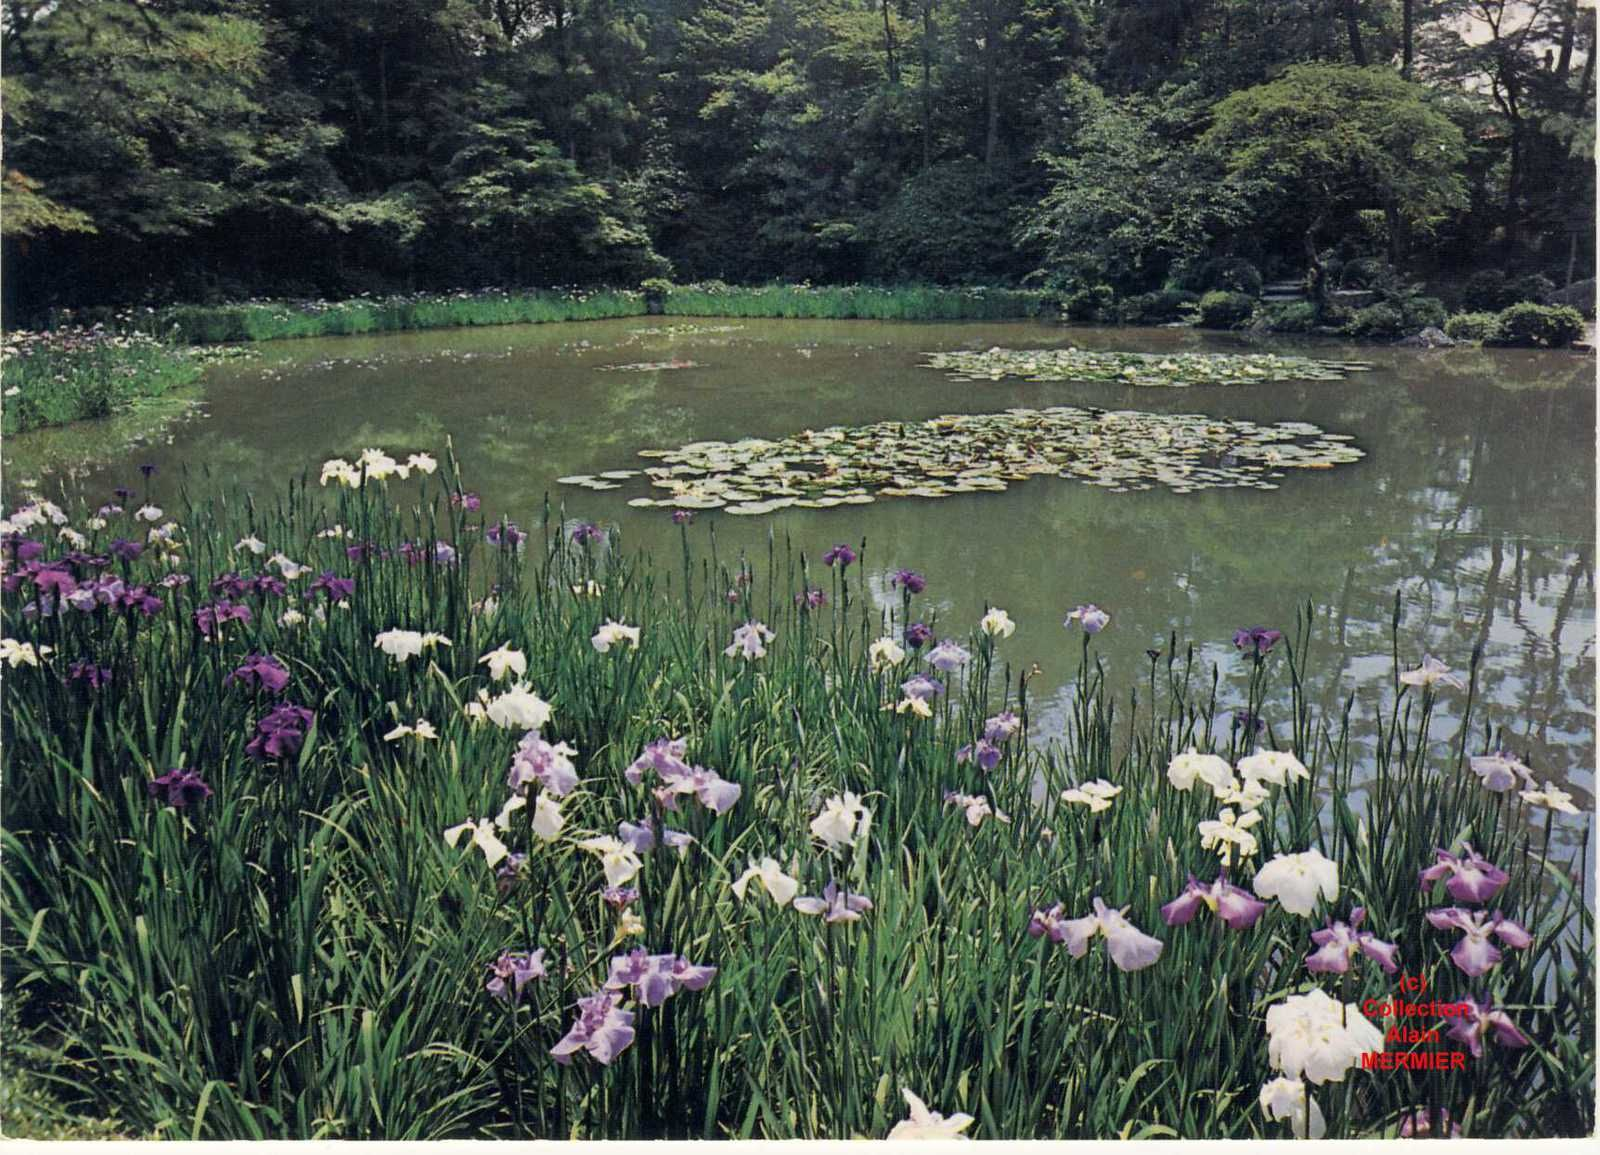 Iris -2190- CPM  The garden  Heian Shrine. Japon ?